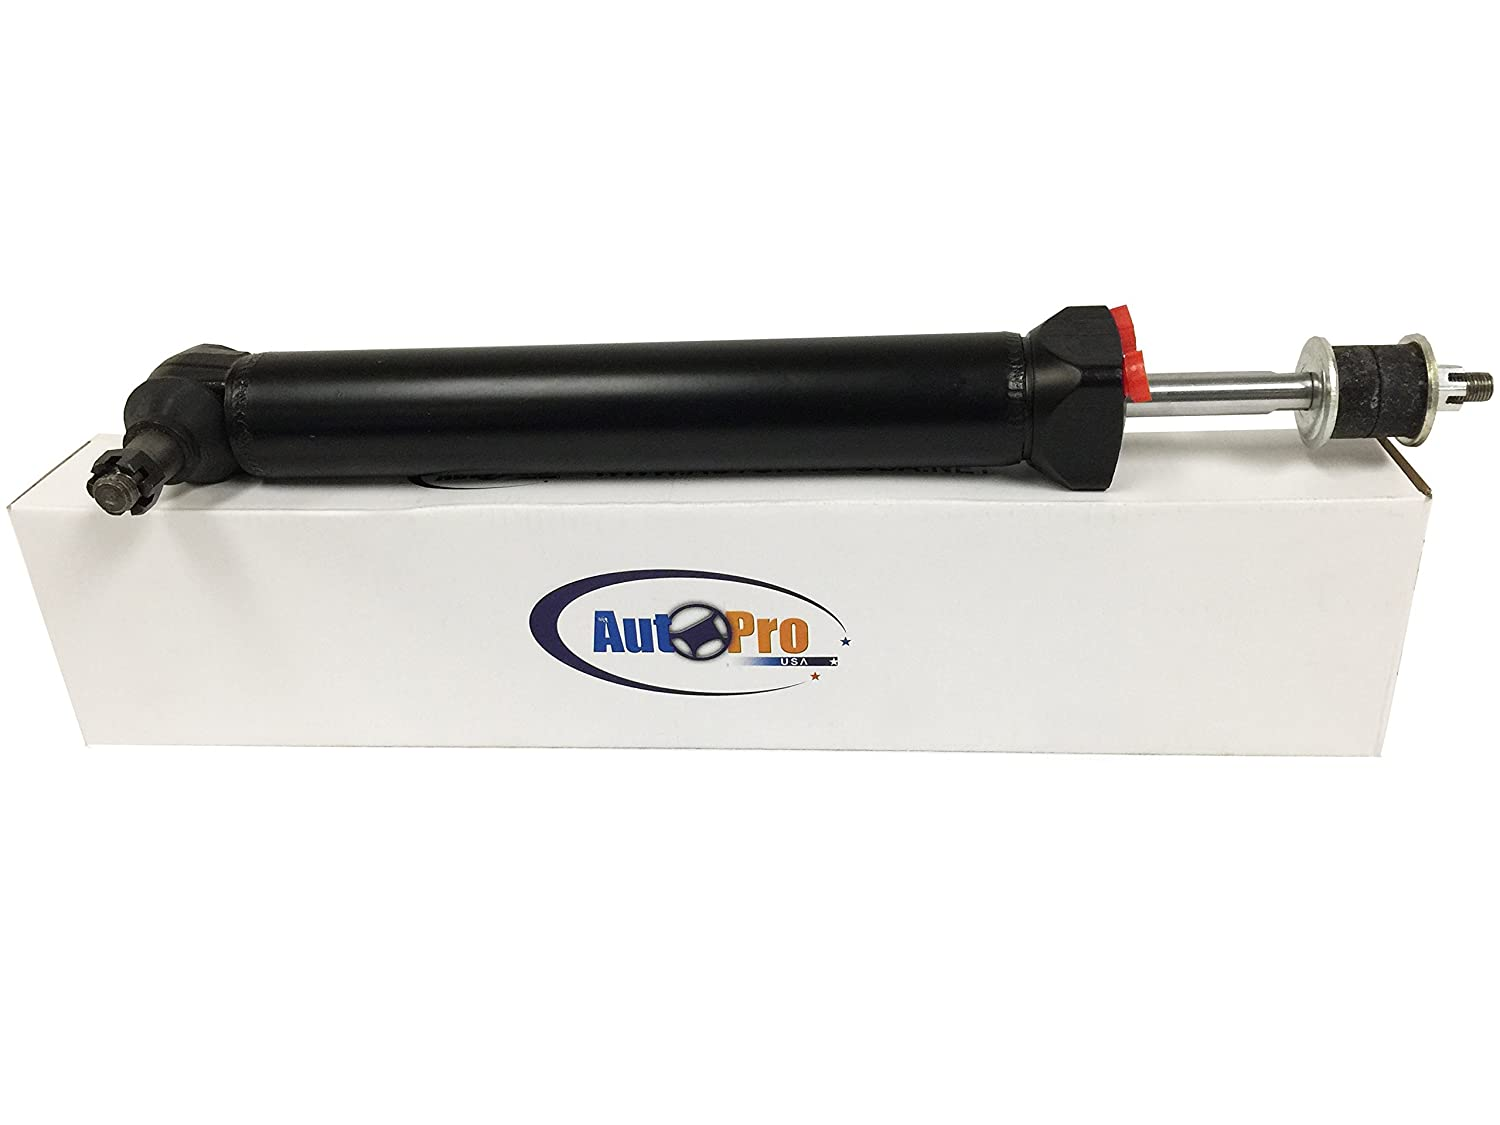 Full Size Chevy Power Steering Hydraulic Ram Cylinder BRAND NEW, Impala 1958 1959 1960 1961 1962 1963 1964 Auto Pro USA